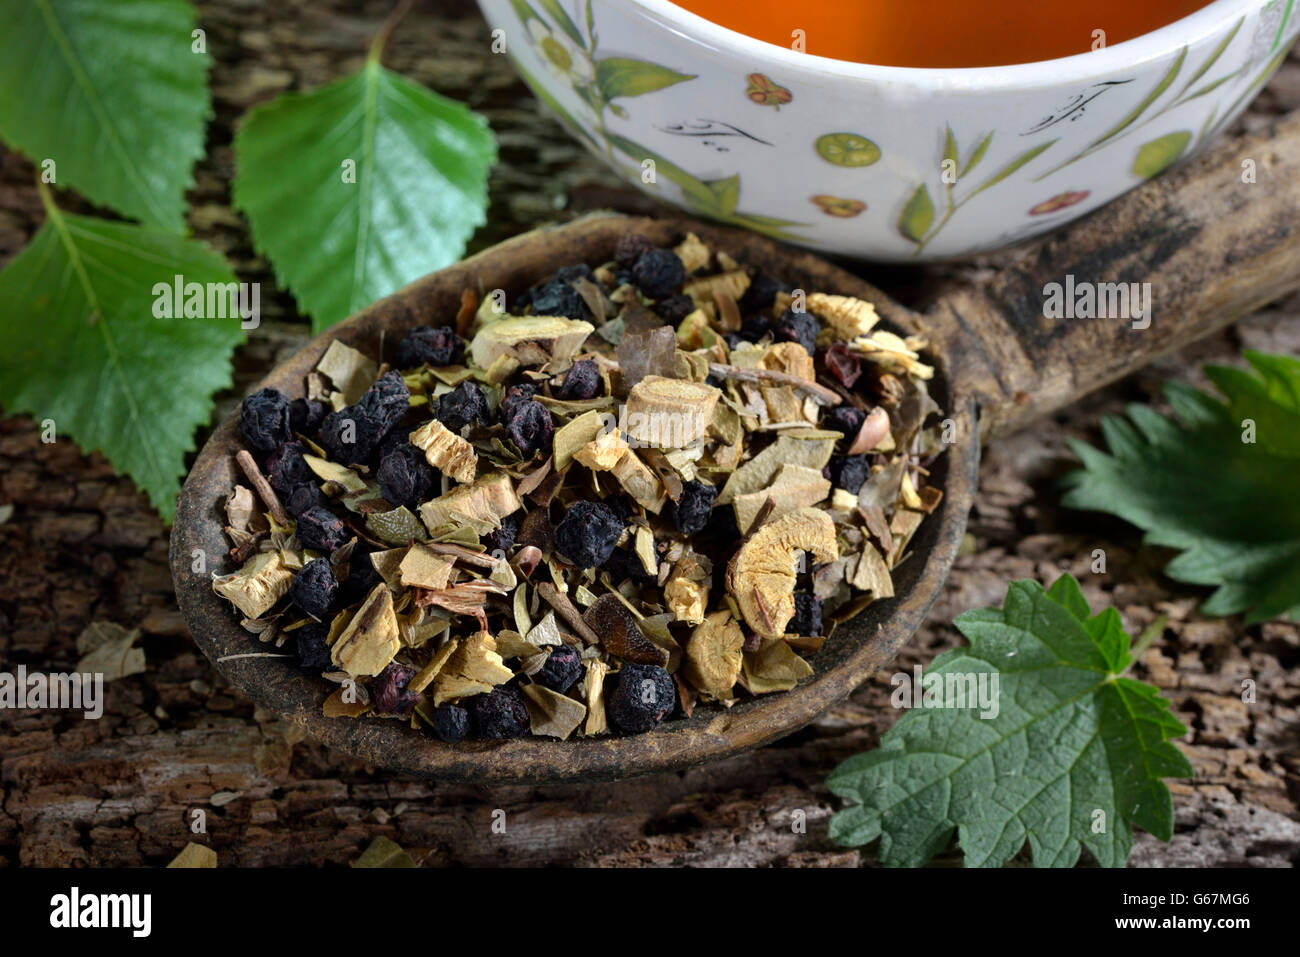 Liquorice root tea blend, birch leaves, stinging nettle, anise, blueberries / (Glycyrrhiza glabra, Betula pendula, - Stock Image